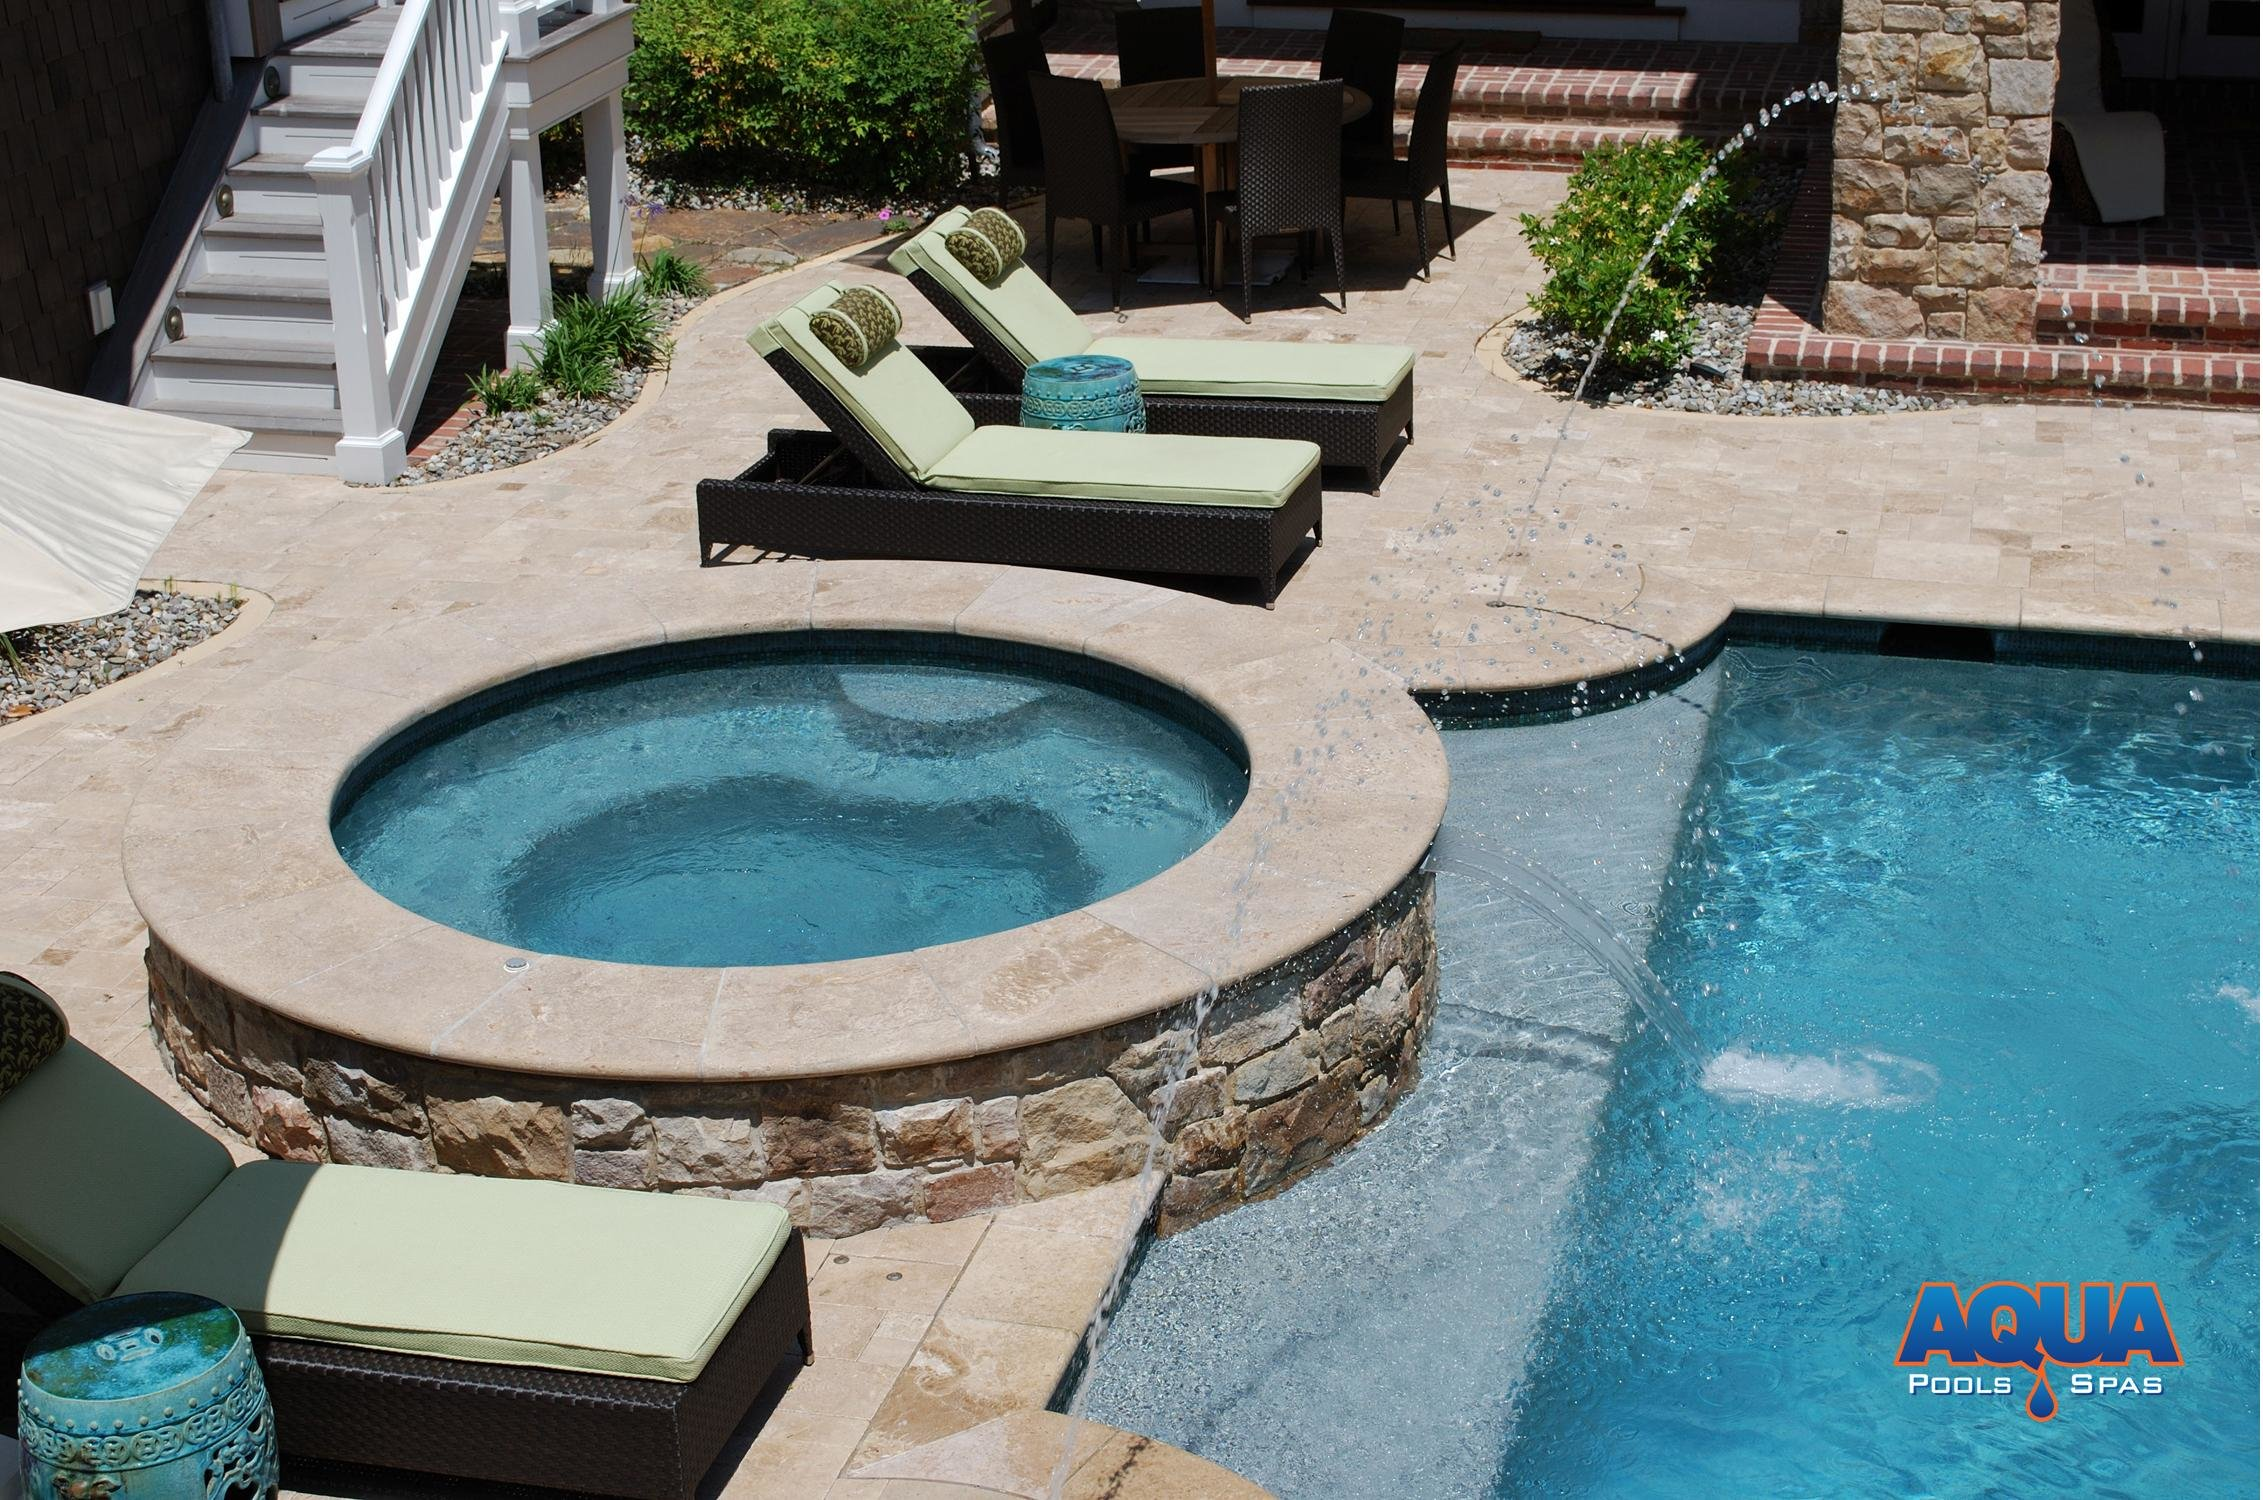 Jacuzzi Pool Dimensions Custom Spas Custom Gunite Hot Tubs Aqua Pools And Spas